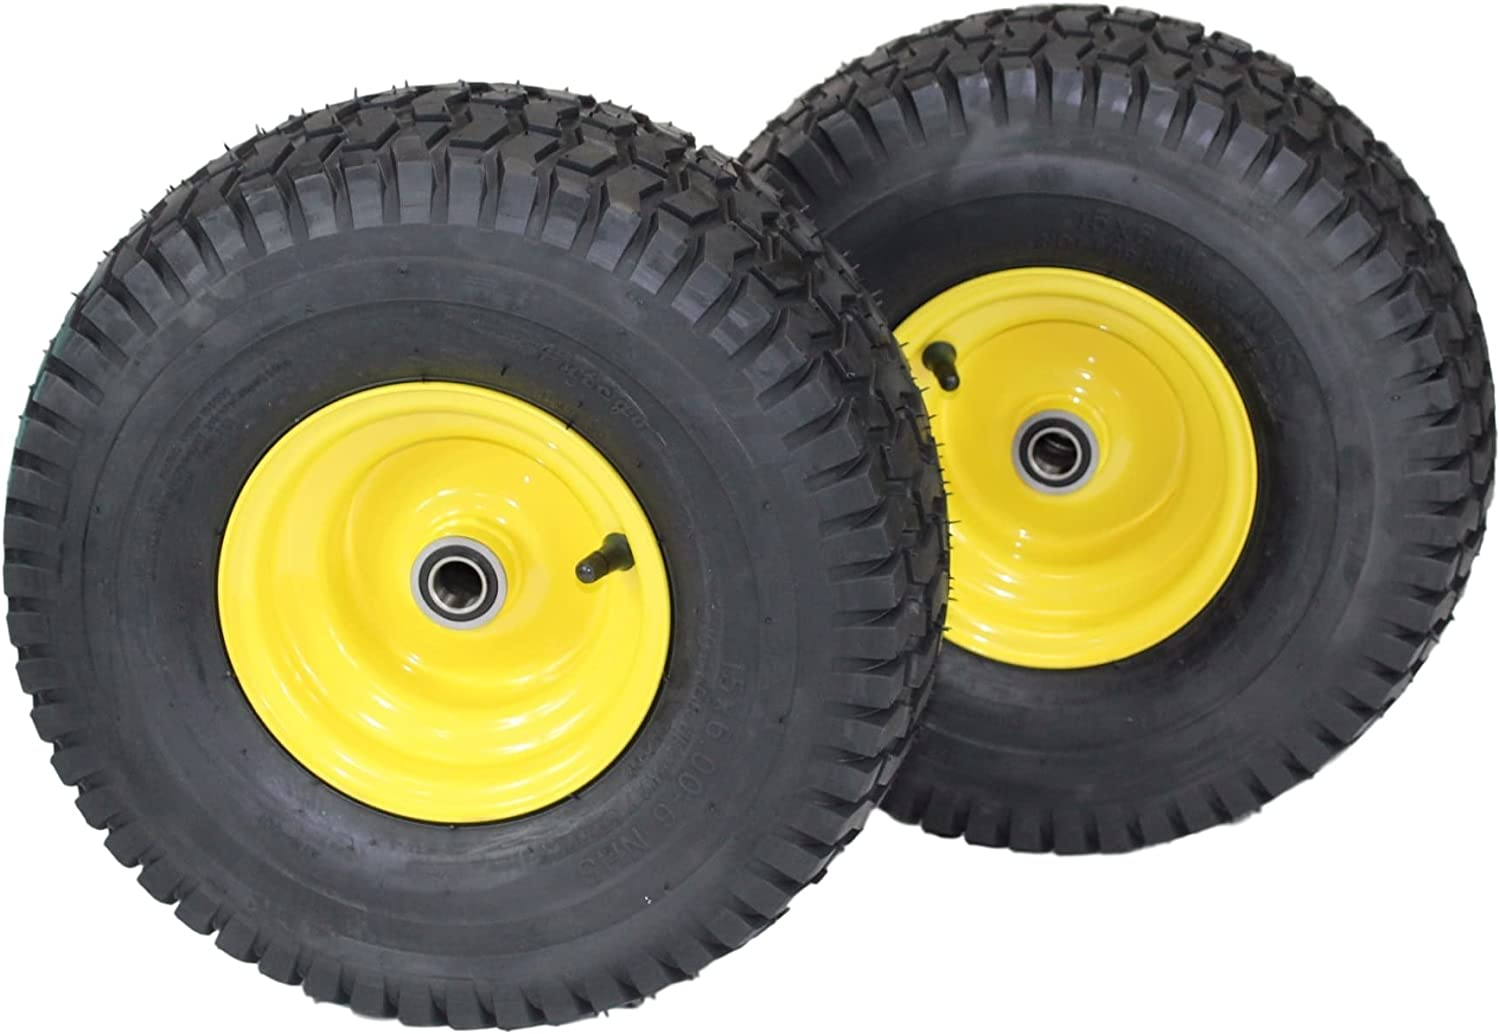 "(Set of 2) 15x6.00-6 Tires & Wheels 4 Ply for Lawn & Garden Mower Turf Tires .75"" Bearing 71a5Gp4teQLSL1500_"